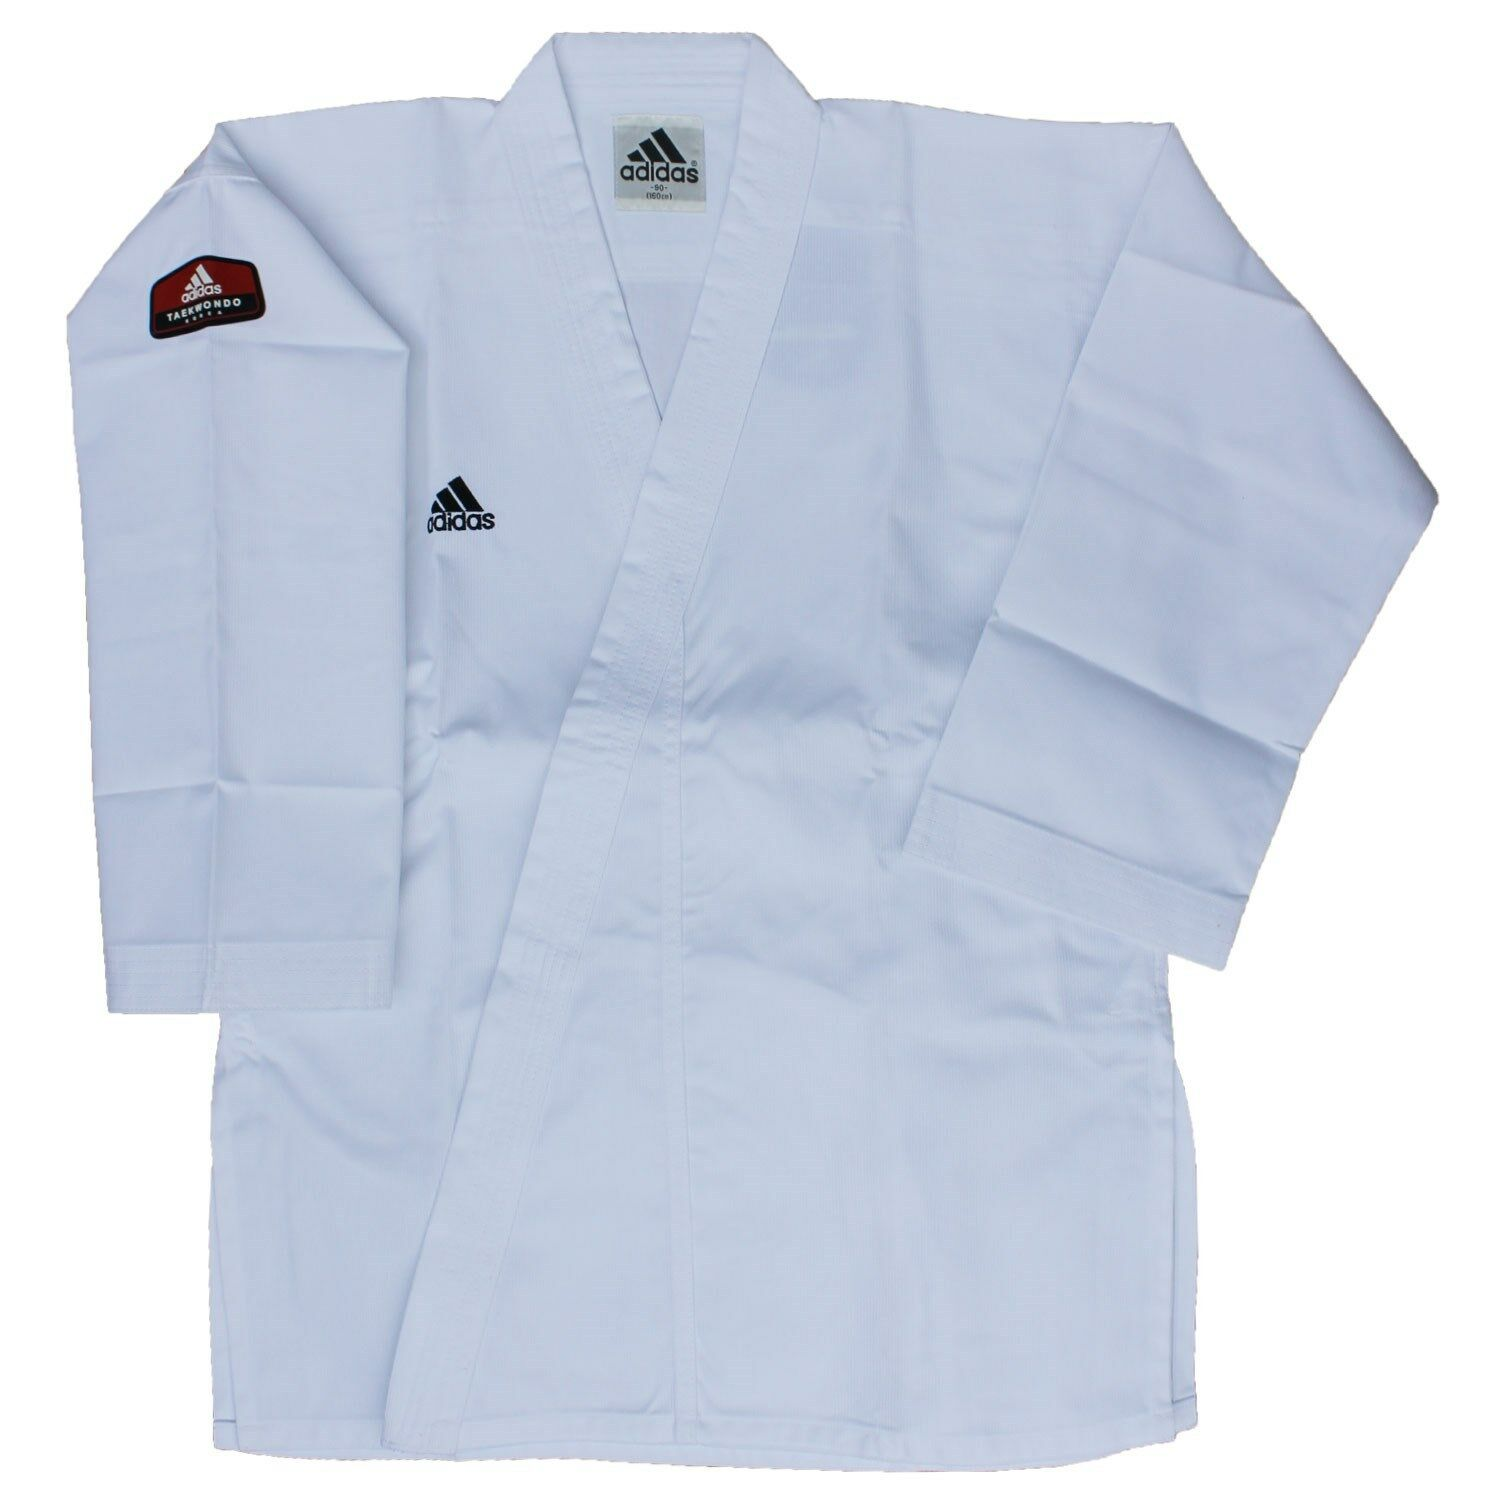 180cm New adidas Taekwondo Uniform ADICHAMP3 Uniform Set w//WHITE V-Neck size 4